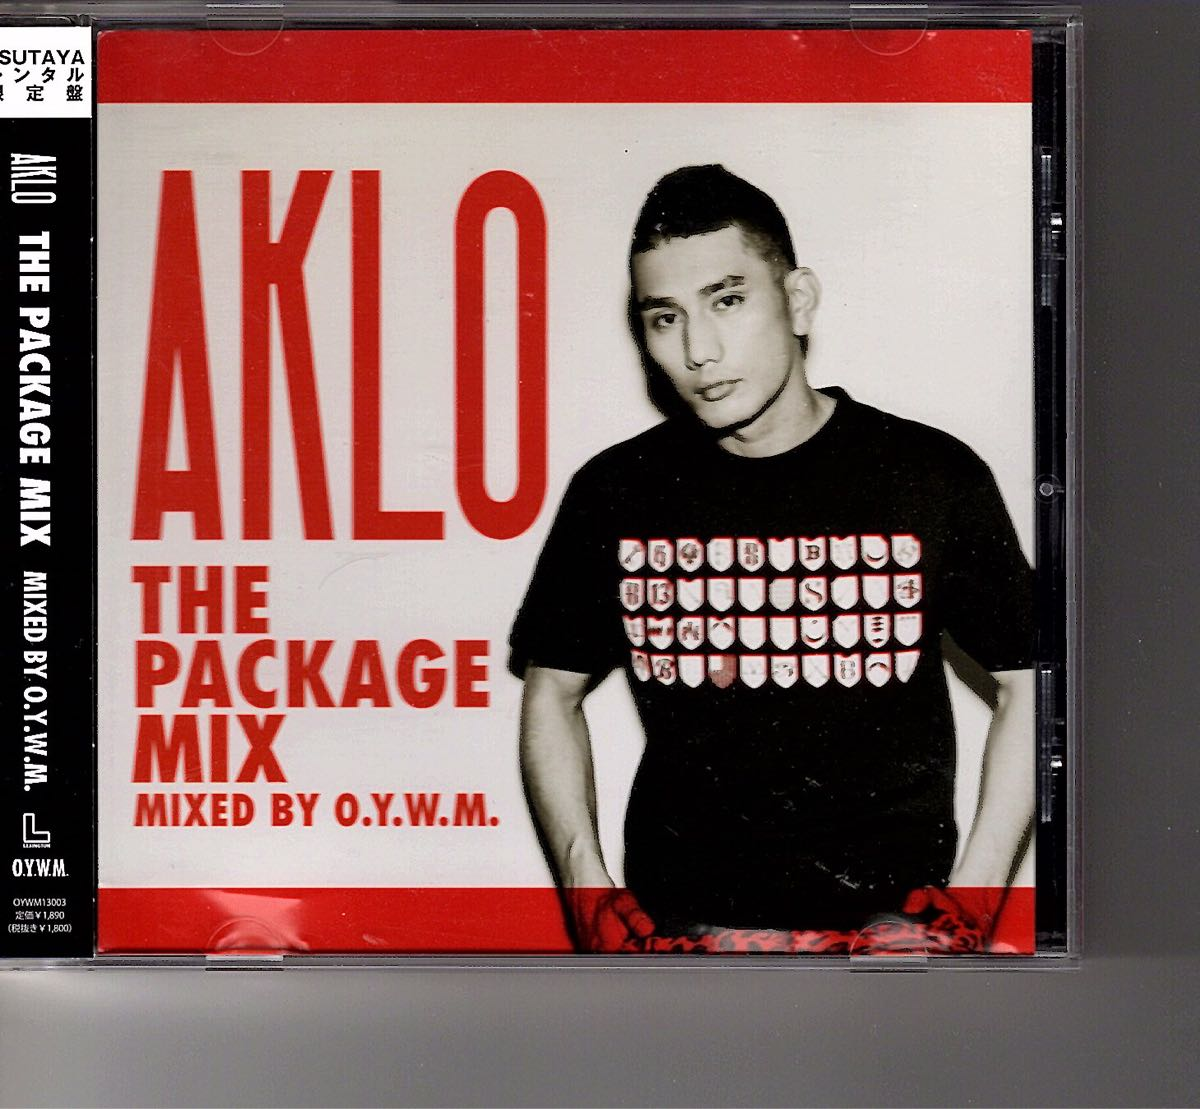 TSUTAYAレンタル限定盤!AKLO [THE PACKAGE MIX mix by O.Y.W.M.]_画像1